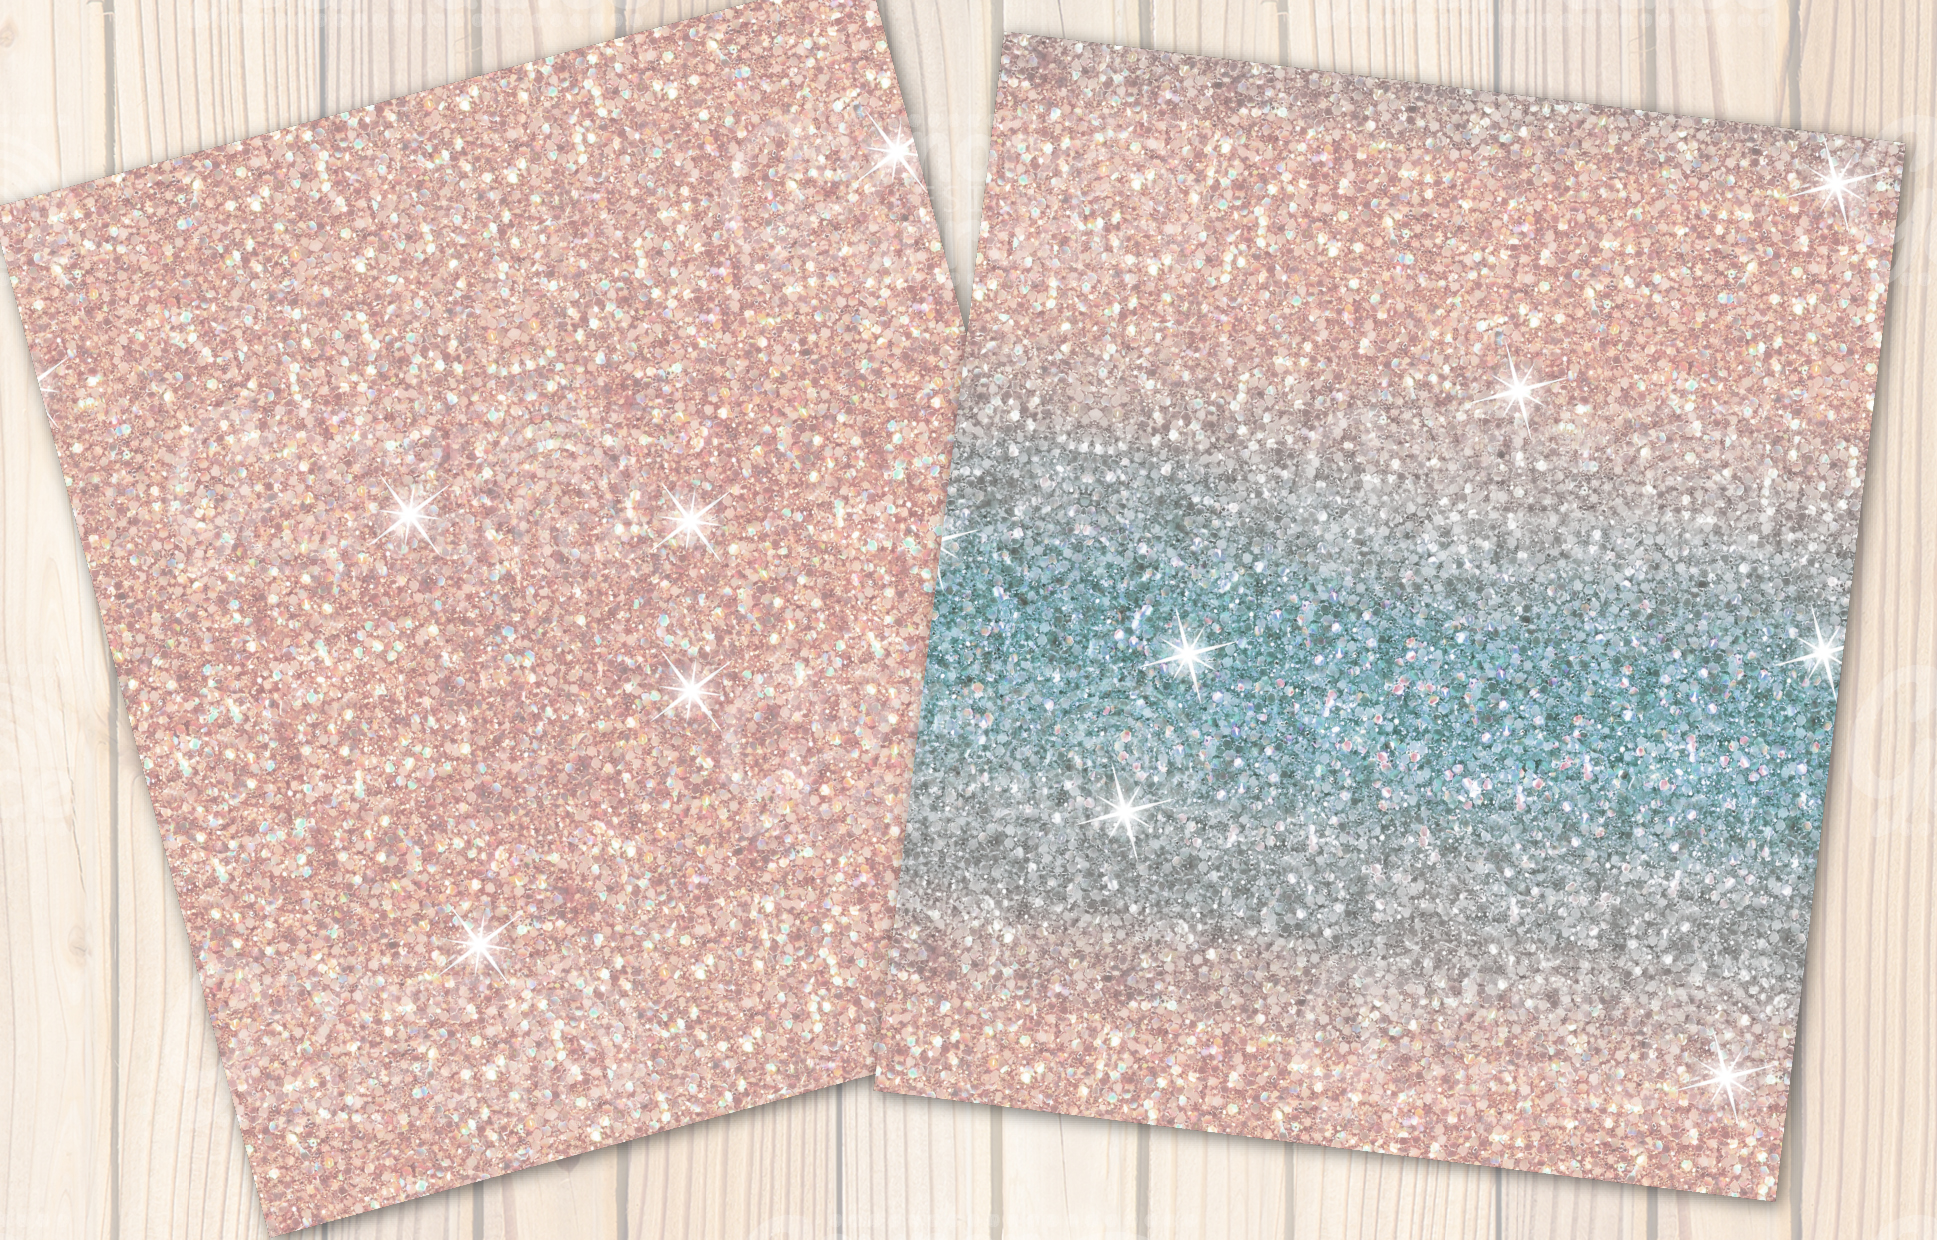 A winters tale - winter Glitter seamless textures example image 6